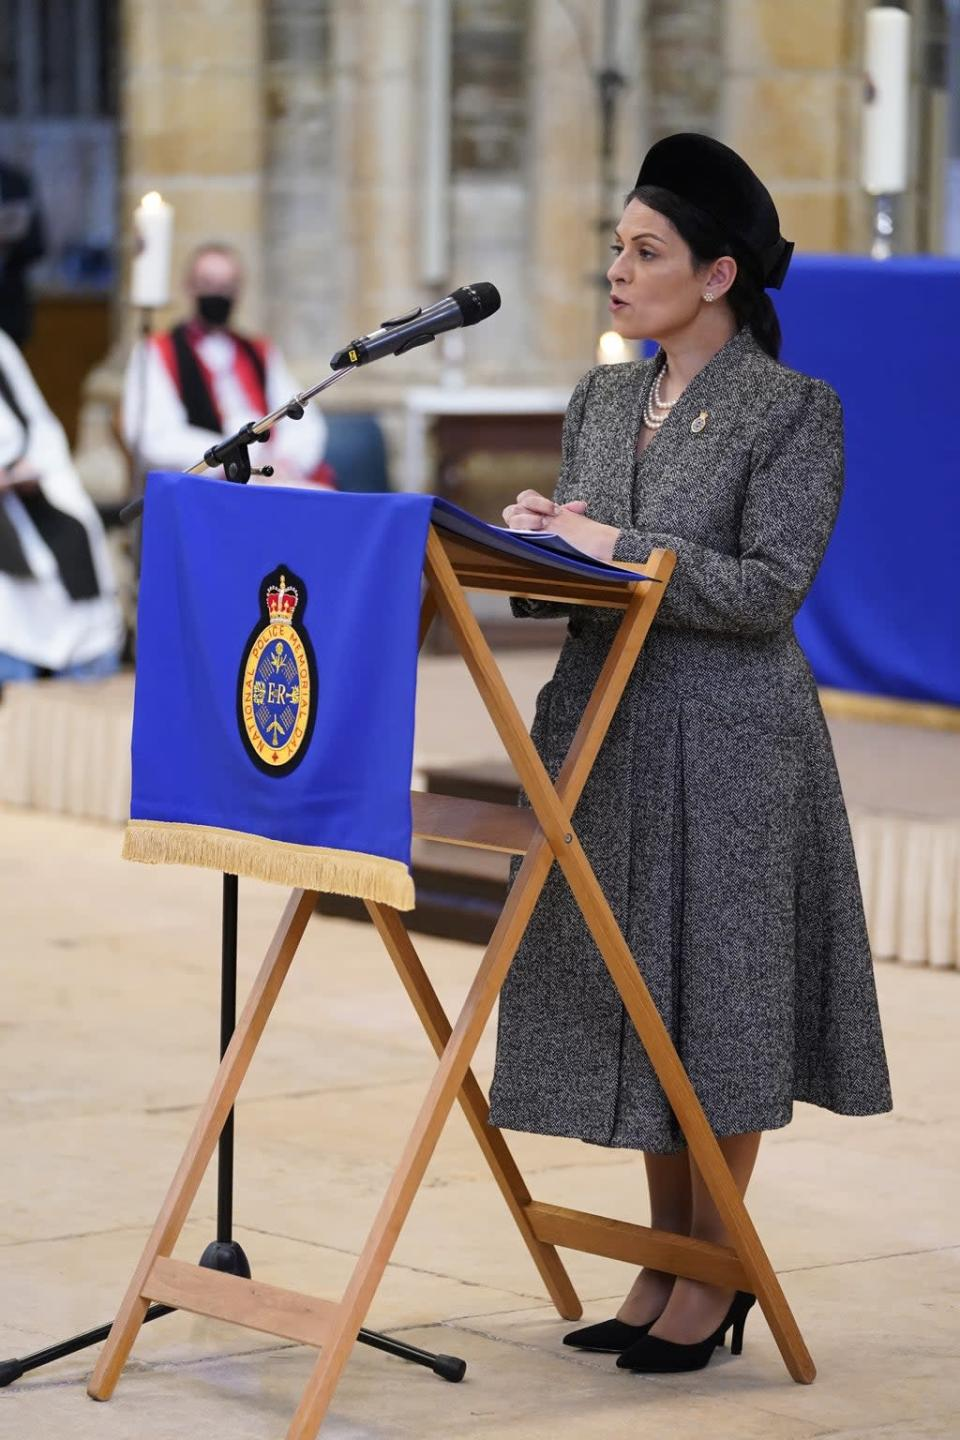 Home Secretary Priti Patel read a passage from the Bible to mark NPMD at Lincoln Cathedral (Danny Lawson/PA) (PA Wire)